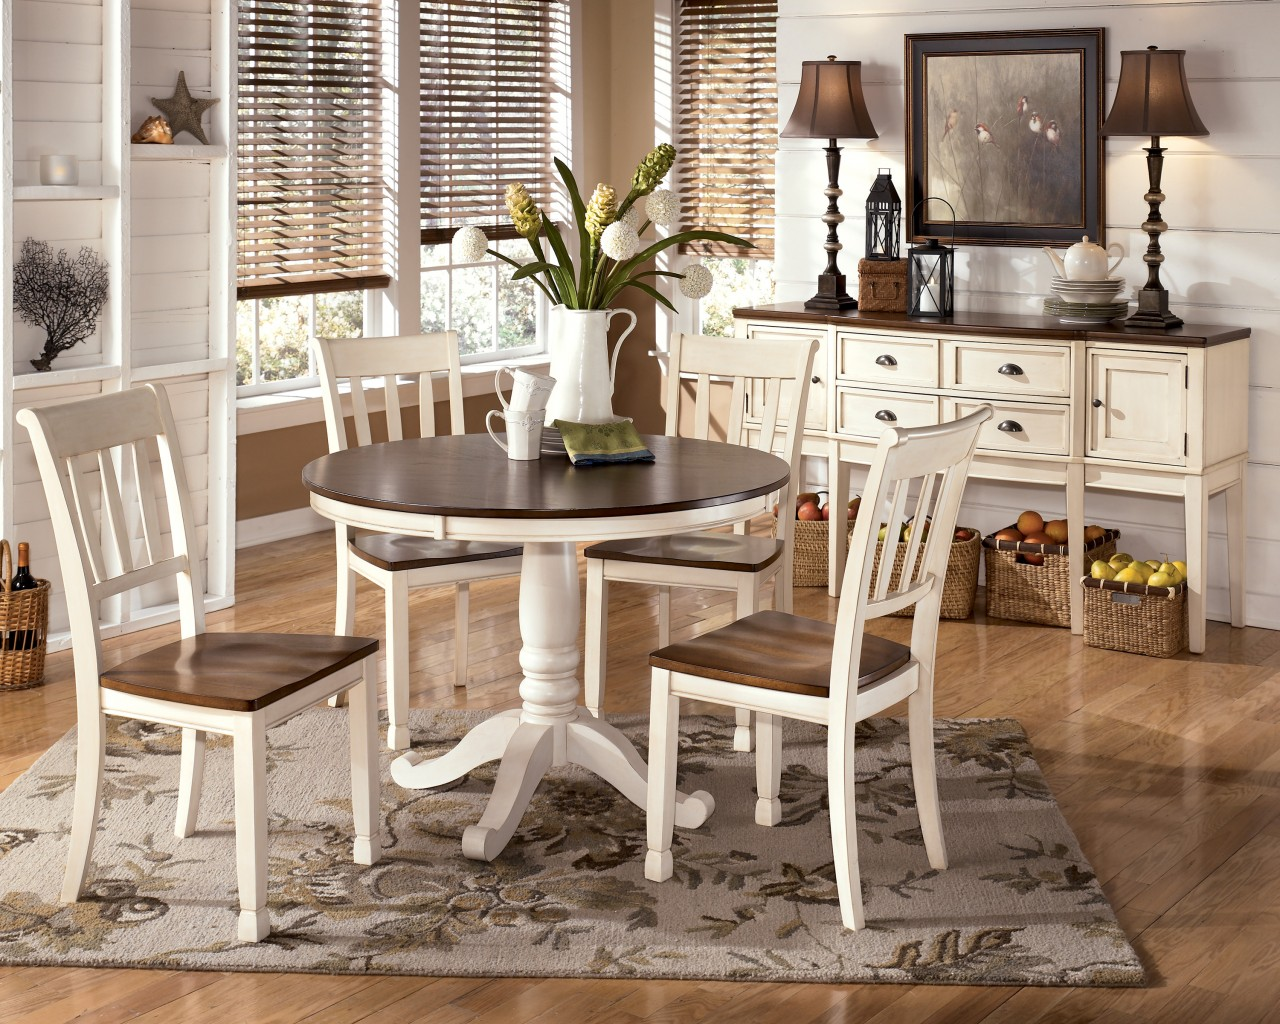 kitchen dining sets dansko shoes 30 rugs that showcase their power under the table